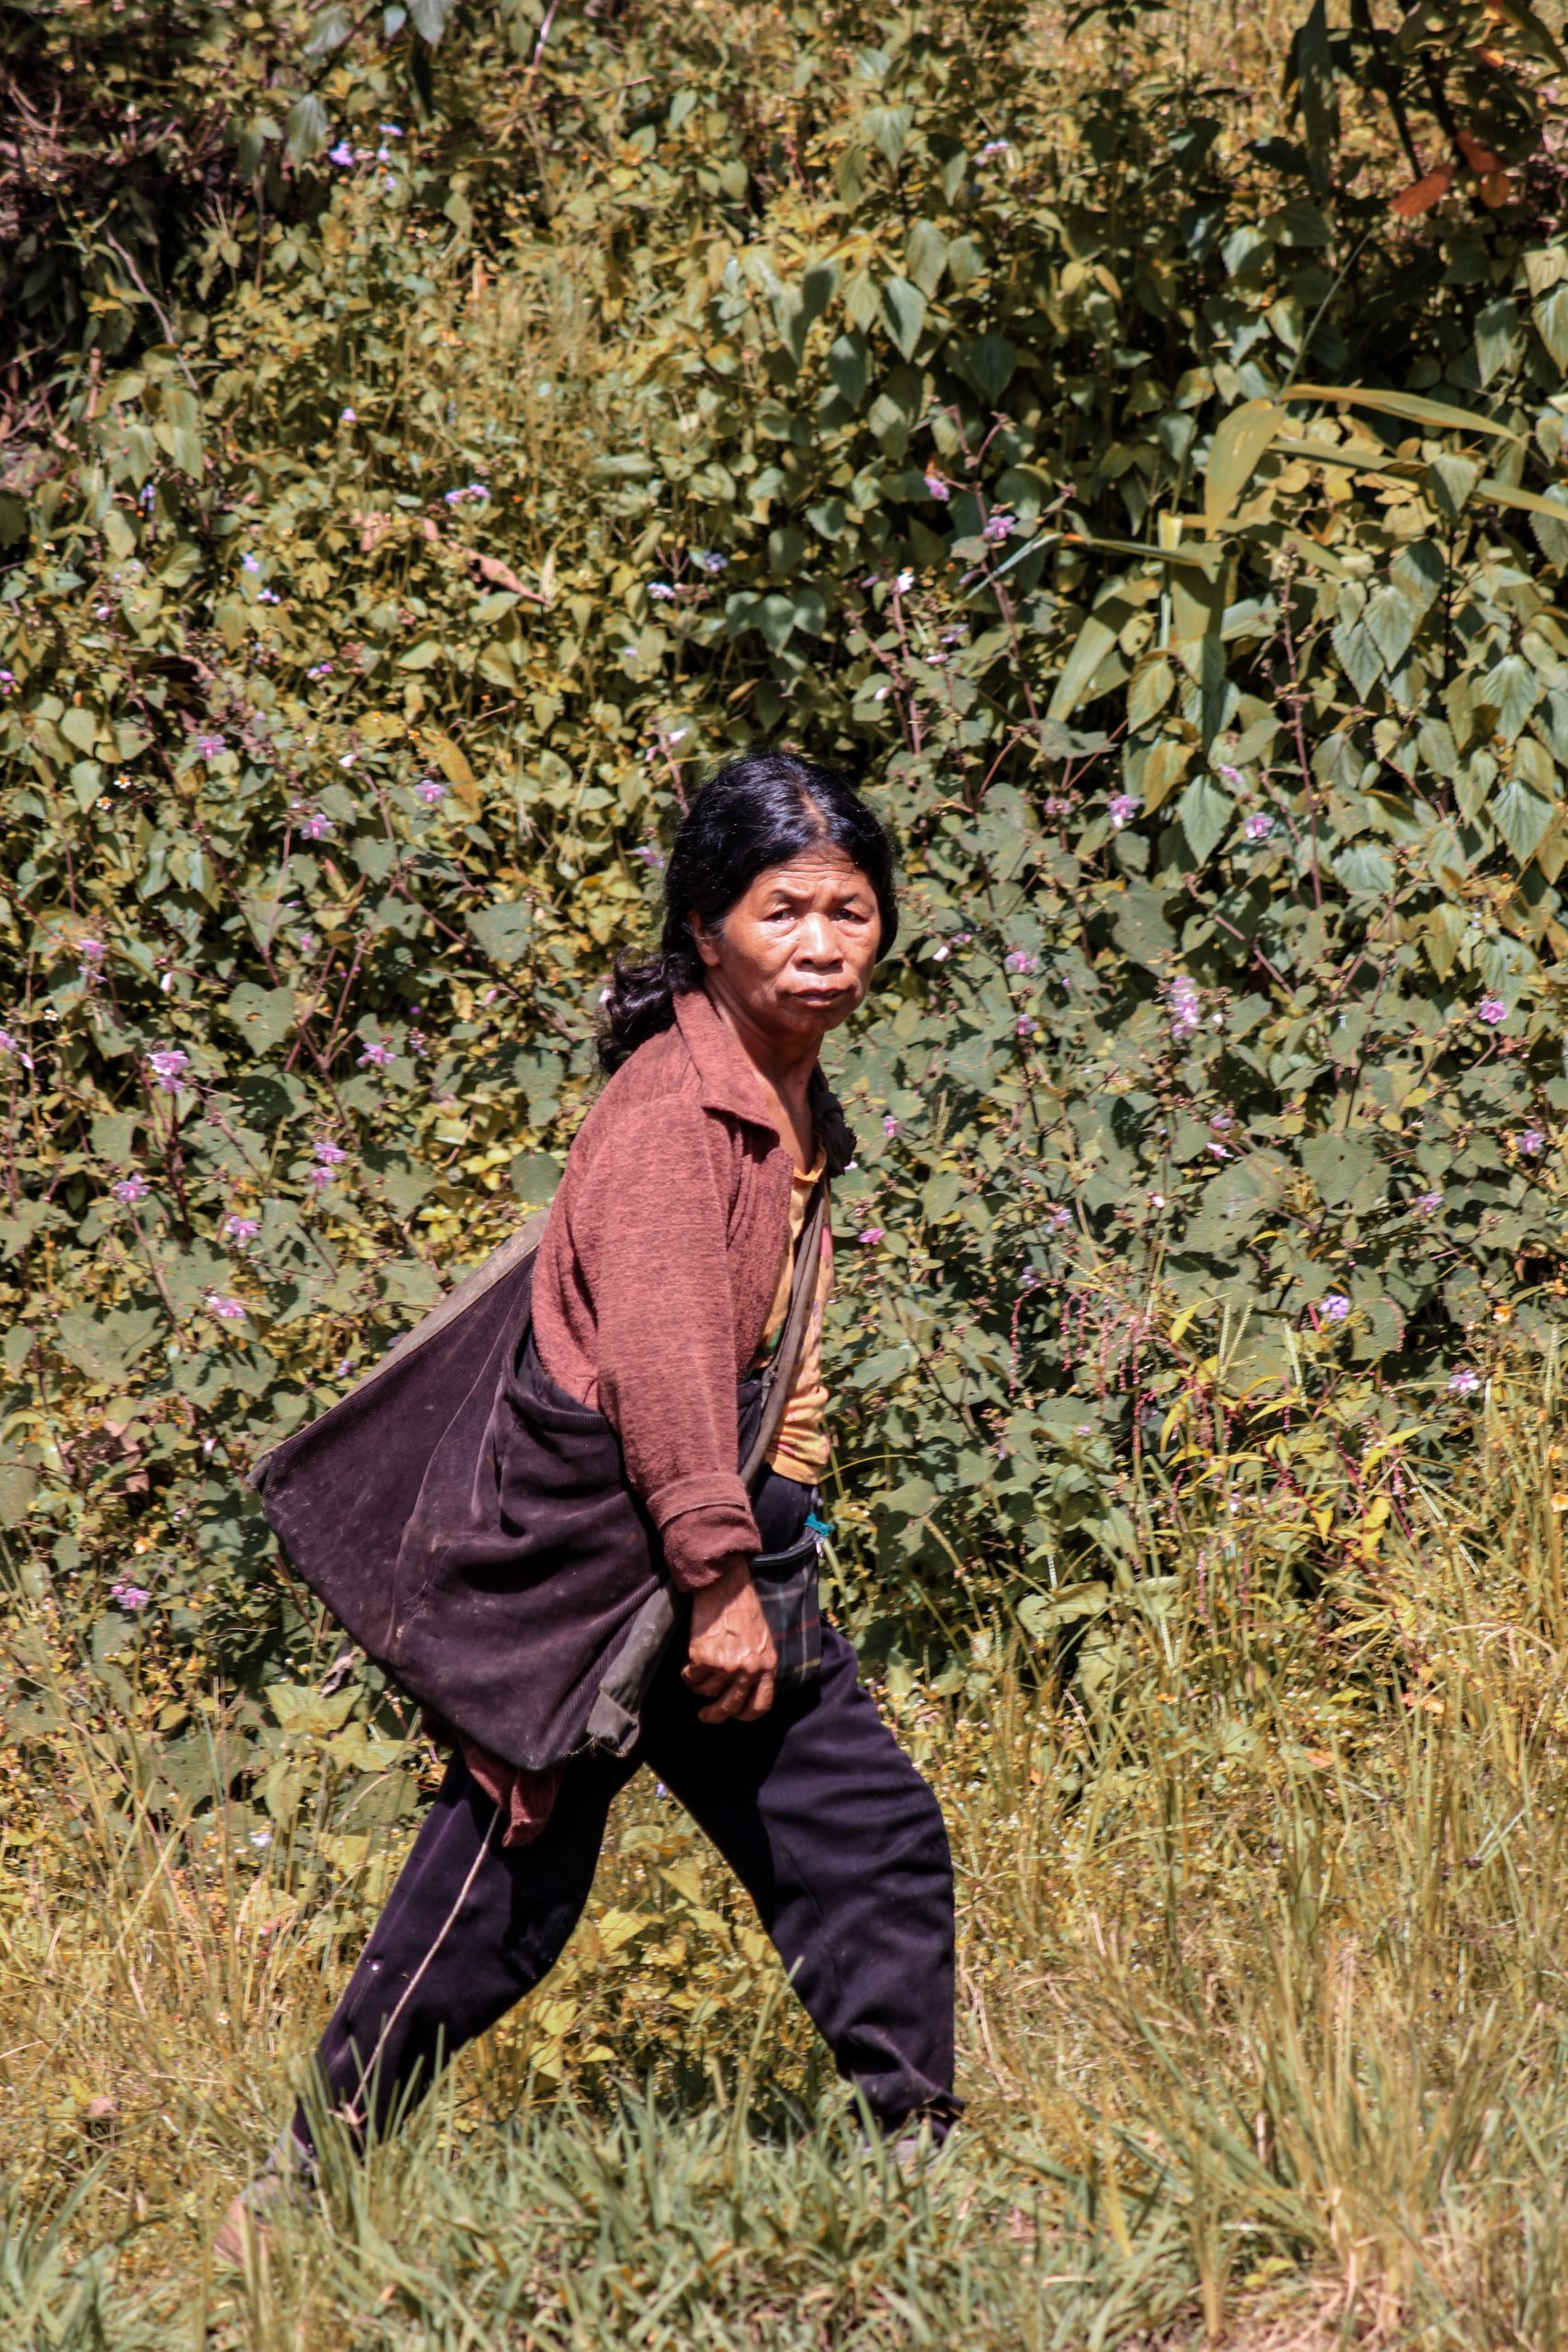 An old lady walking through jungle